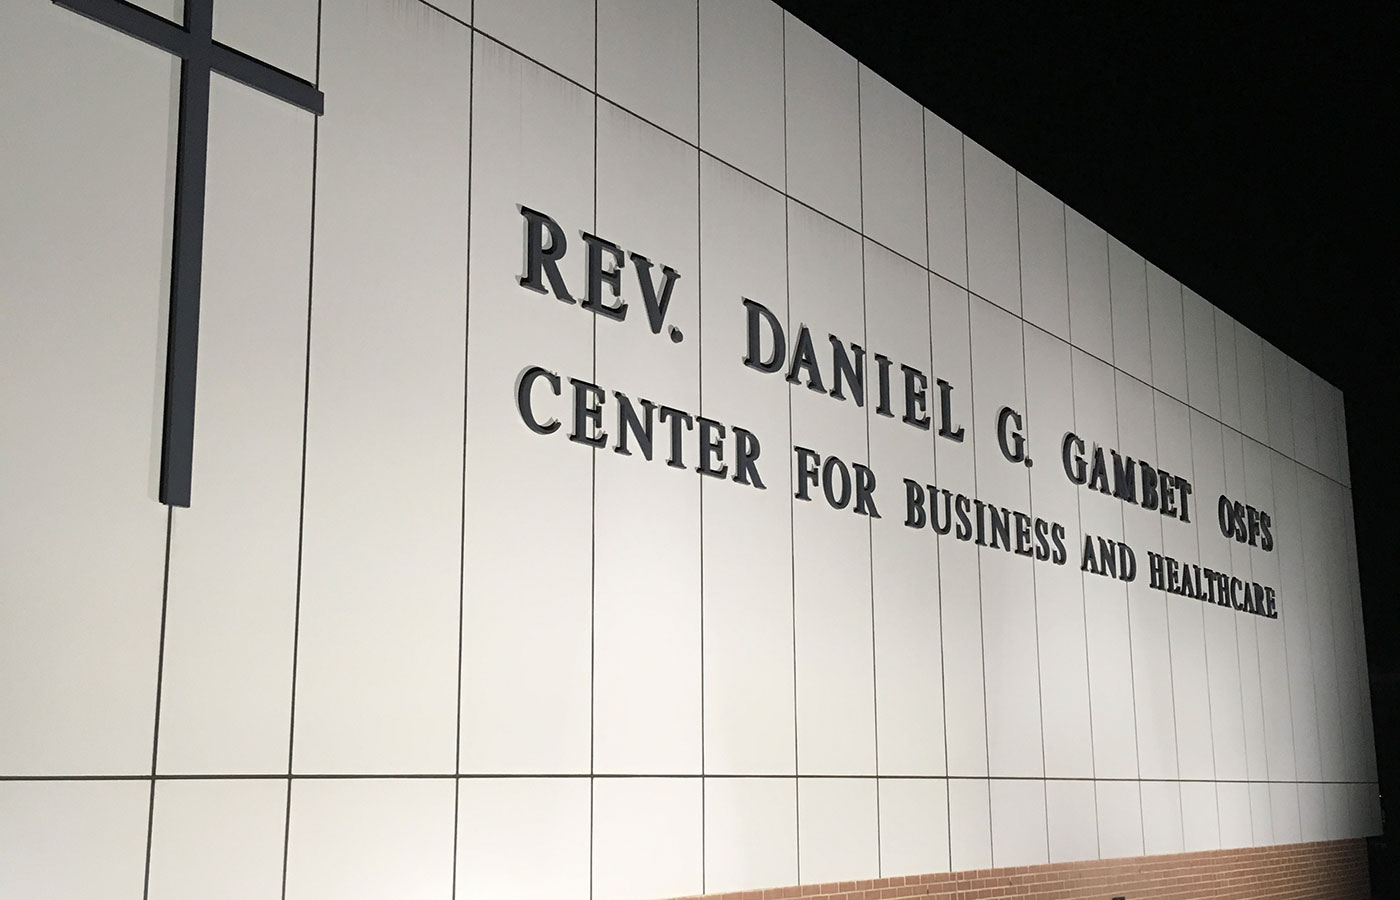 Gambet Center for Business and Healthcare